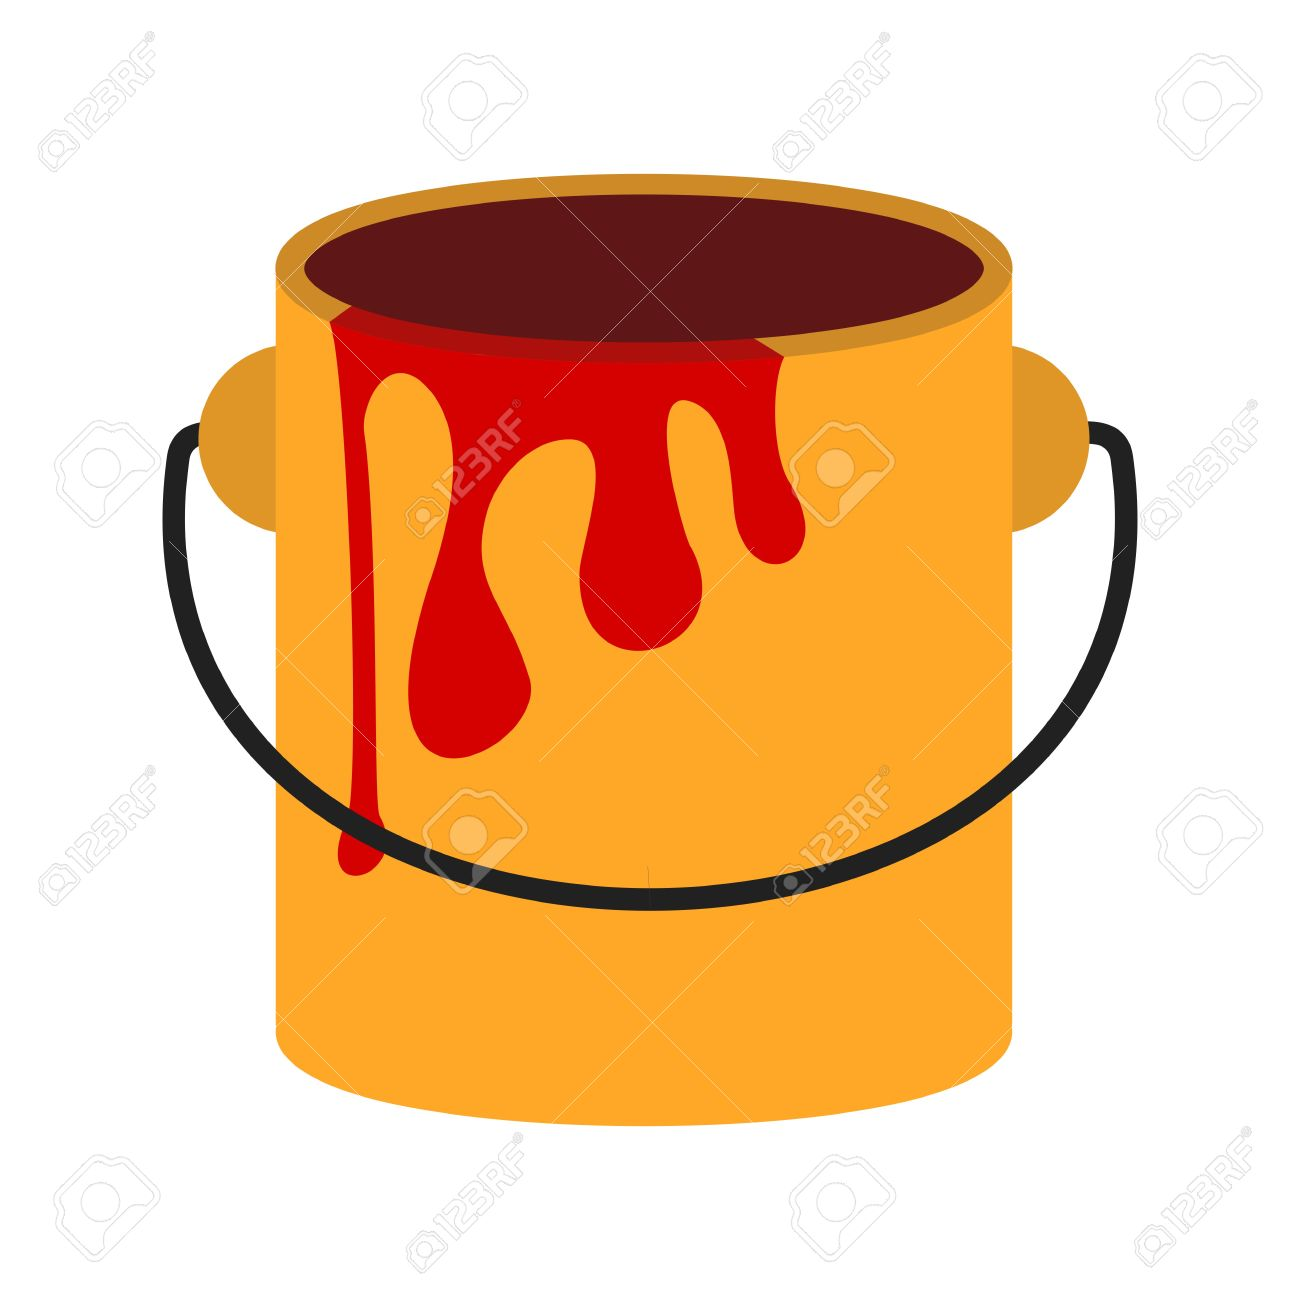 Paint Box, Bucket, Paint Bucket Icon Vector Image. Can Also Be.